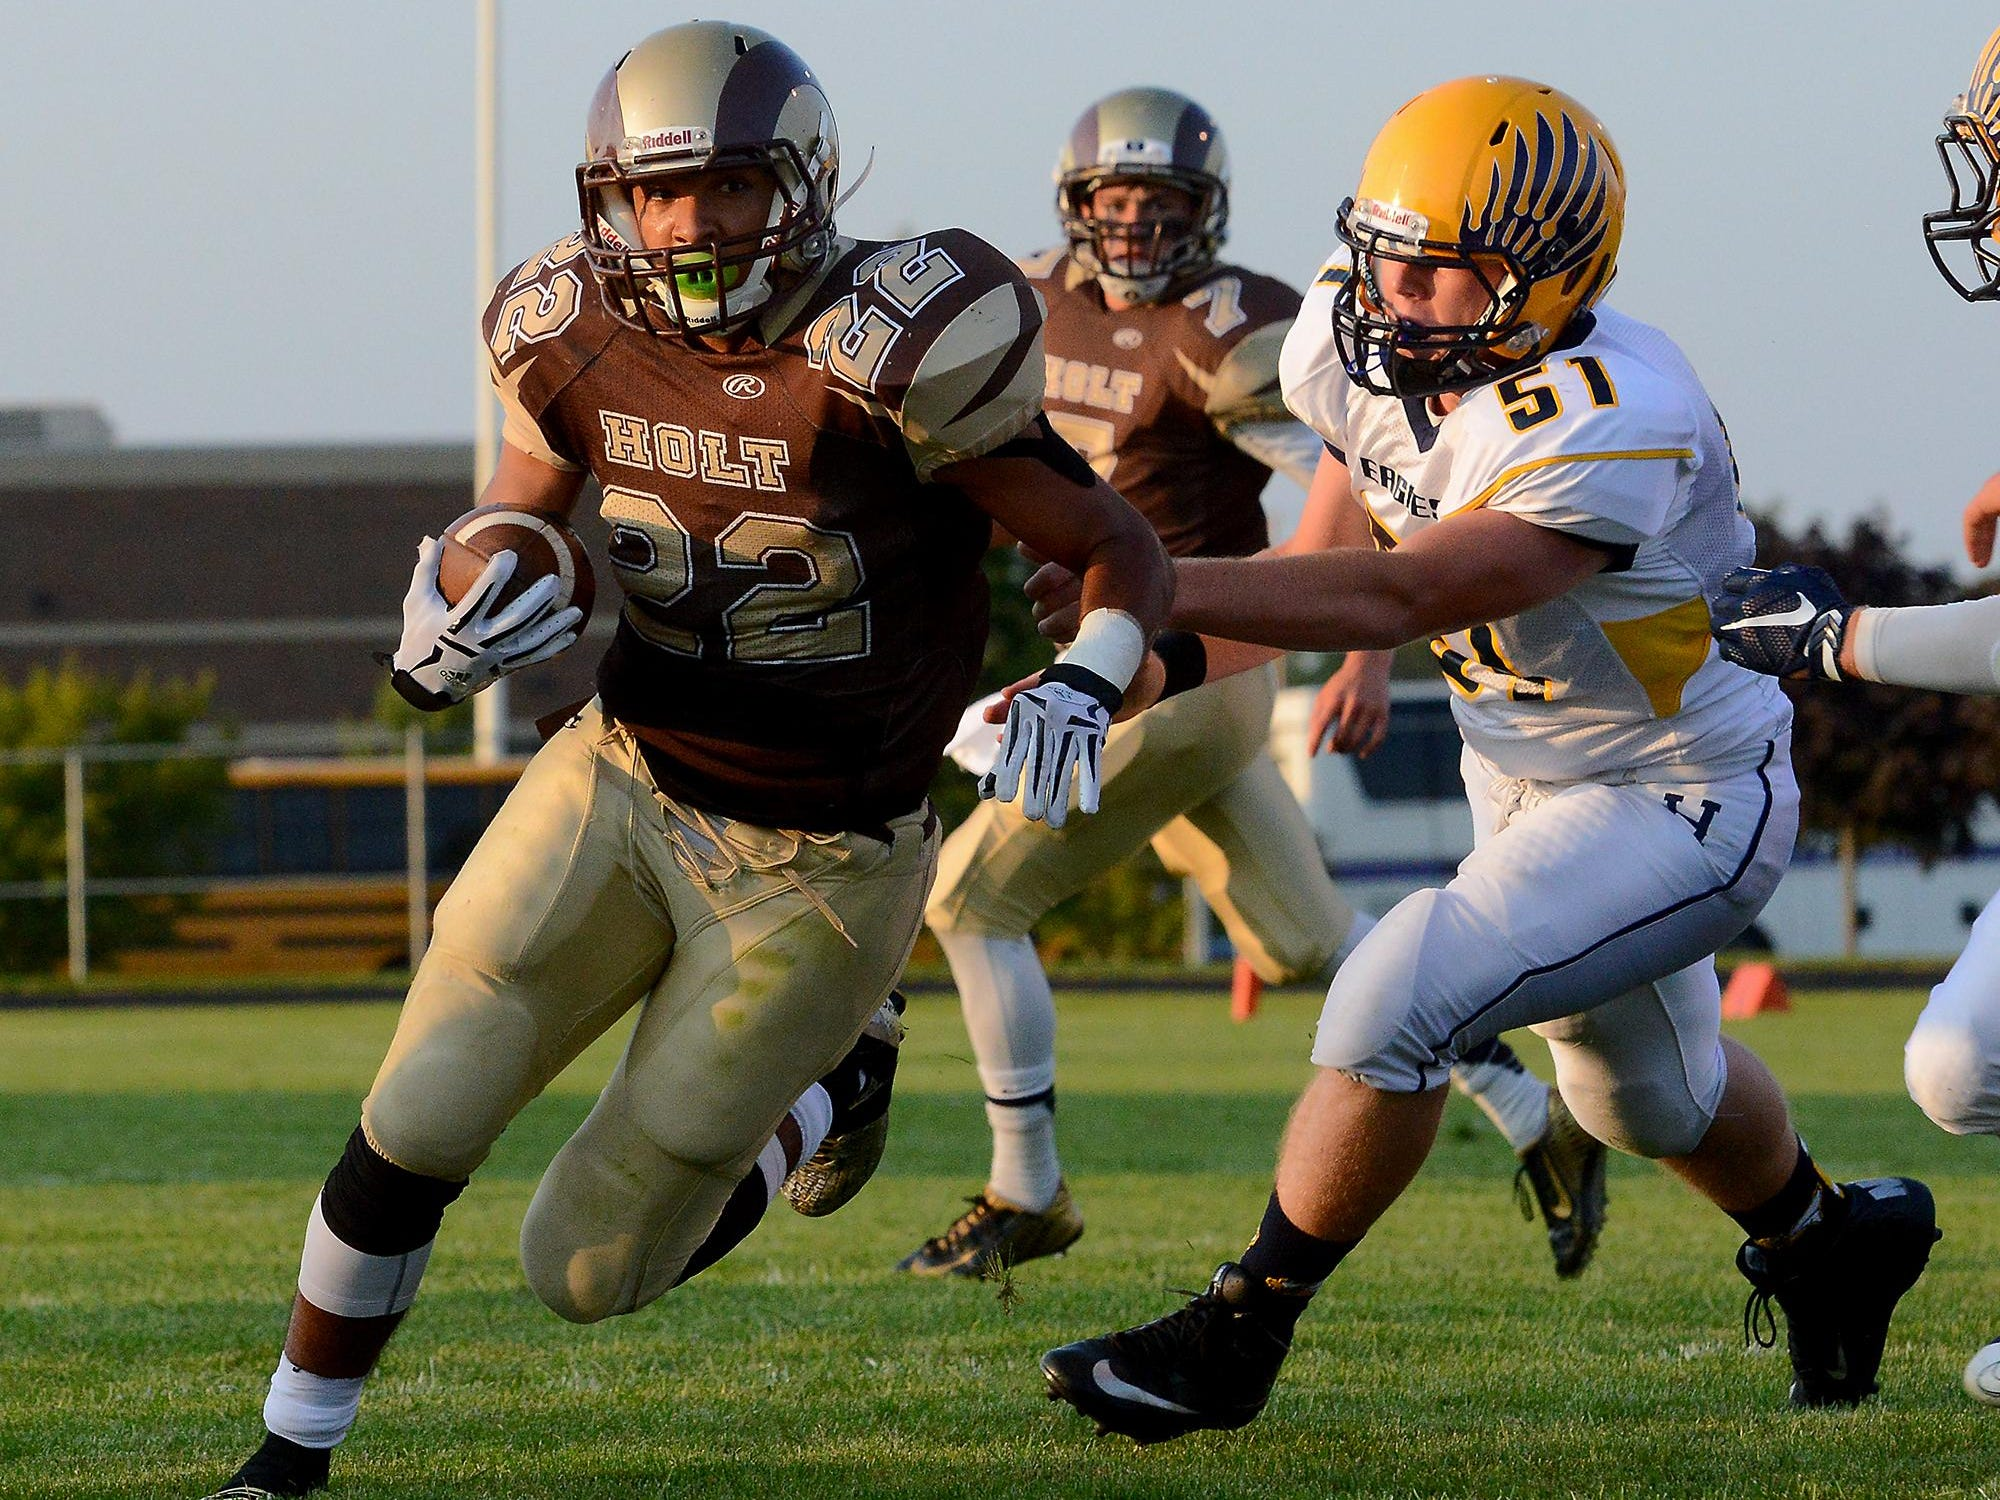 Holt's Trent Stone is one of the area's top rushers.